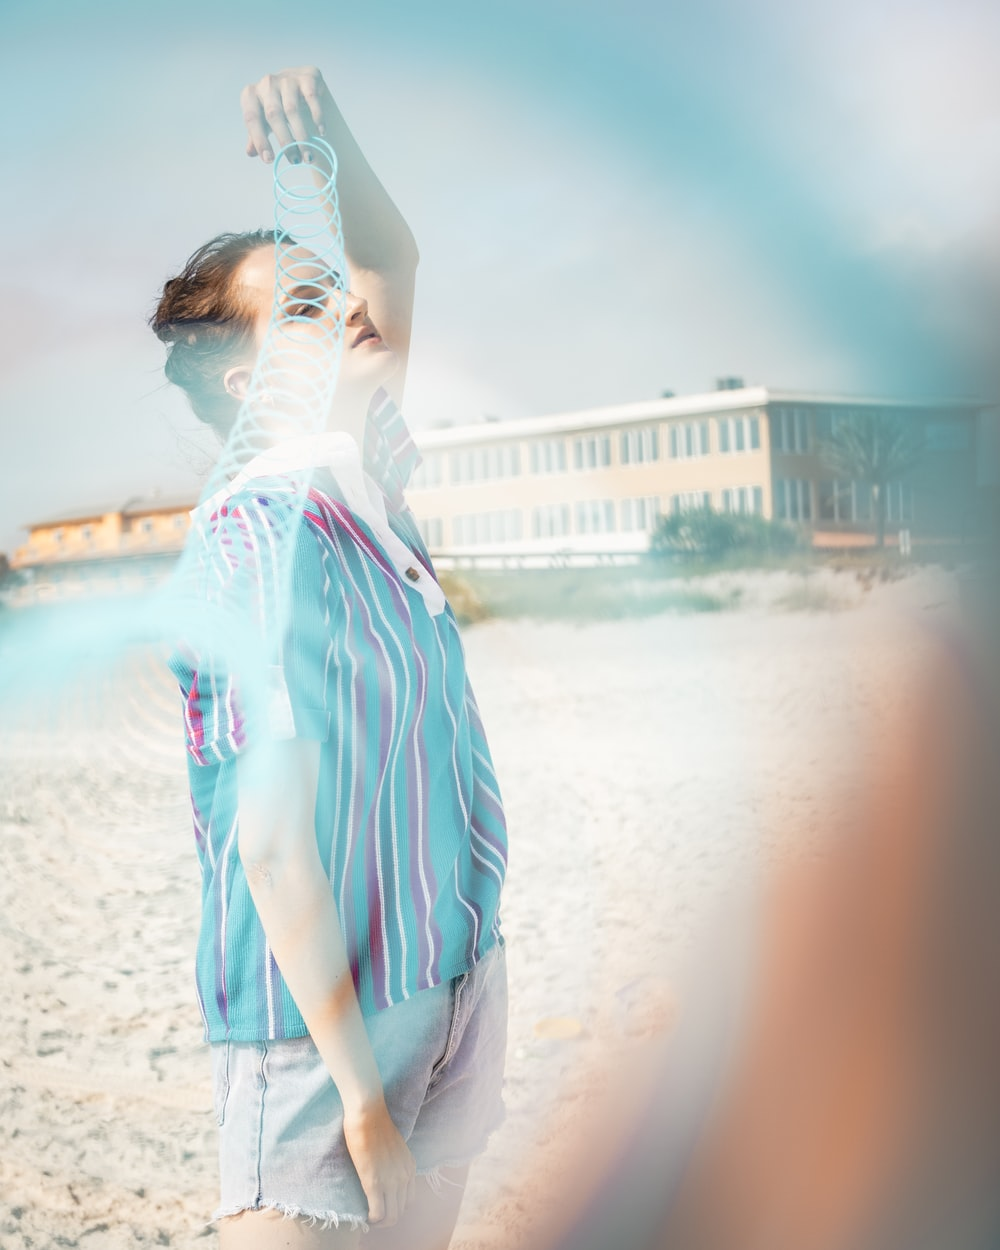 woman in blue and white stripe shirt standing on beach shore during daytime